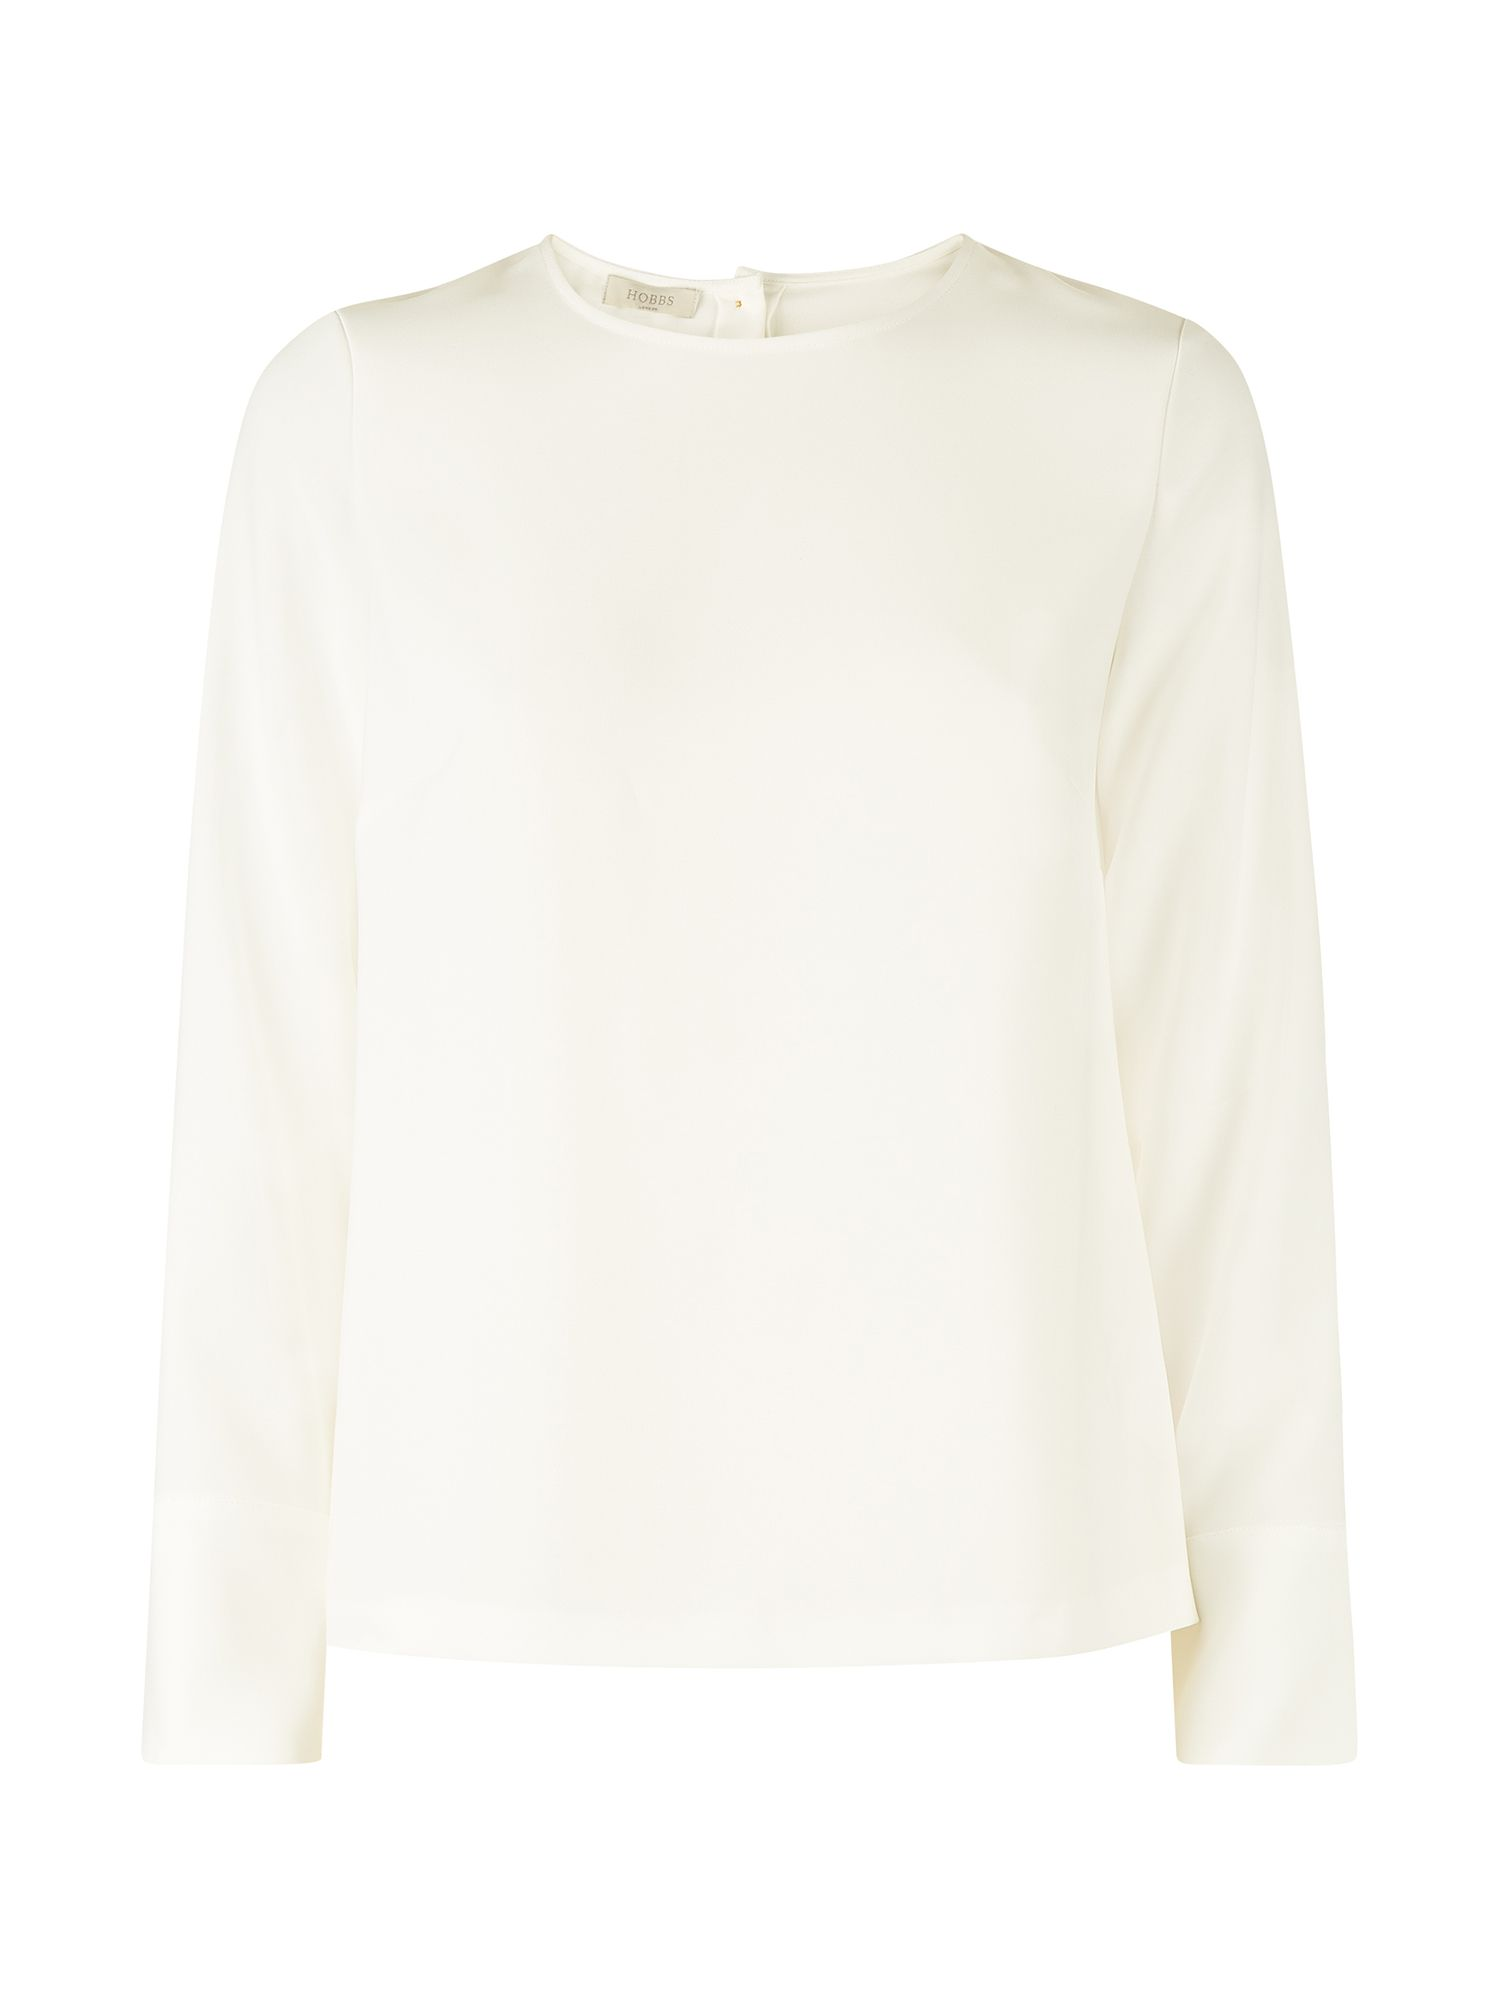 Hobbs Leanne Top, Cream